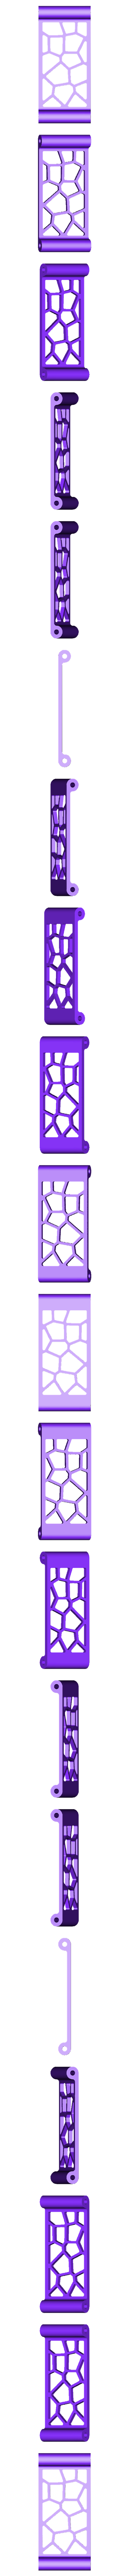 Electribe2_stand_spacer.stl Download free STL file Electribe 2 and Electribe Sample angled voronoi stand (no foam) • 3D print object, KaziToad